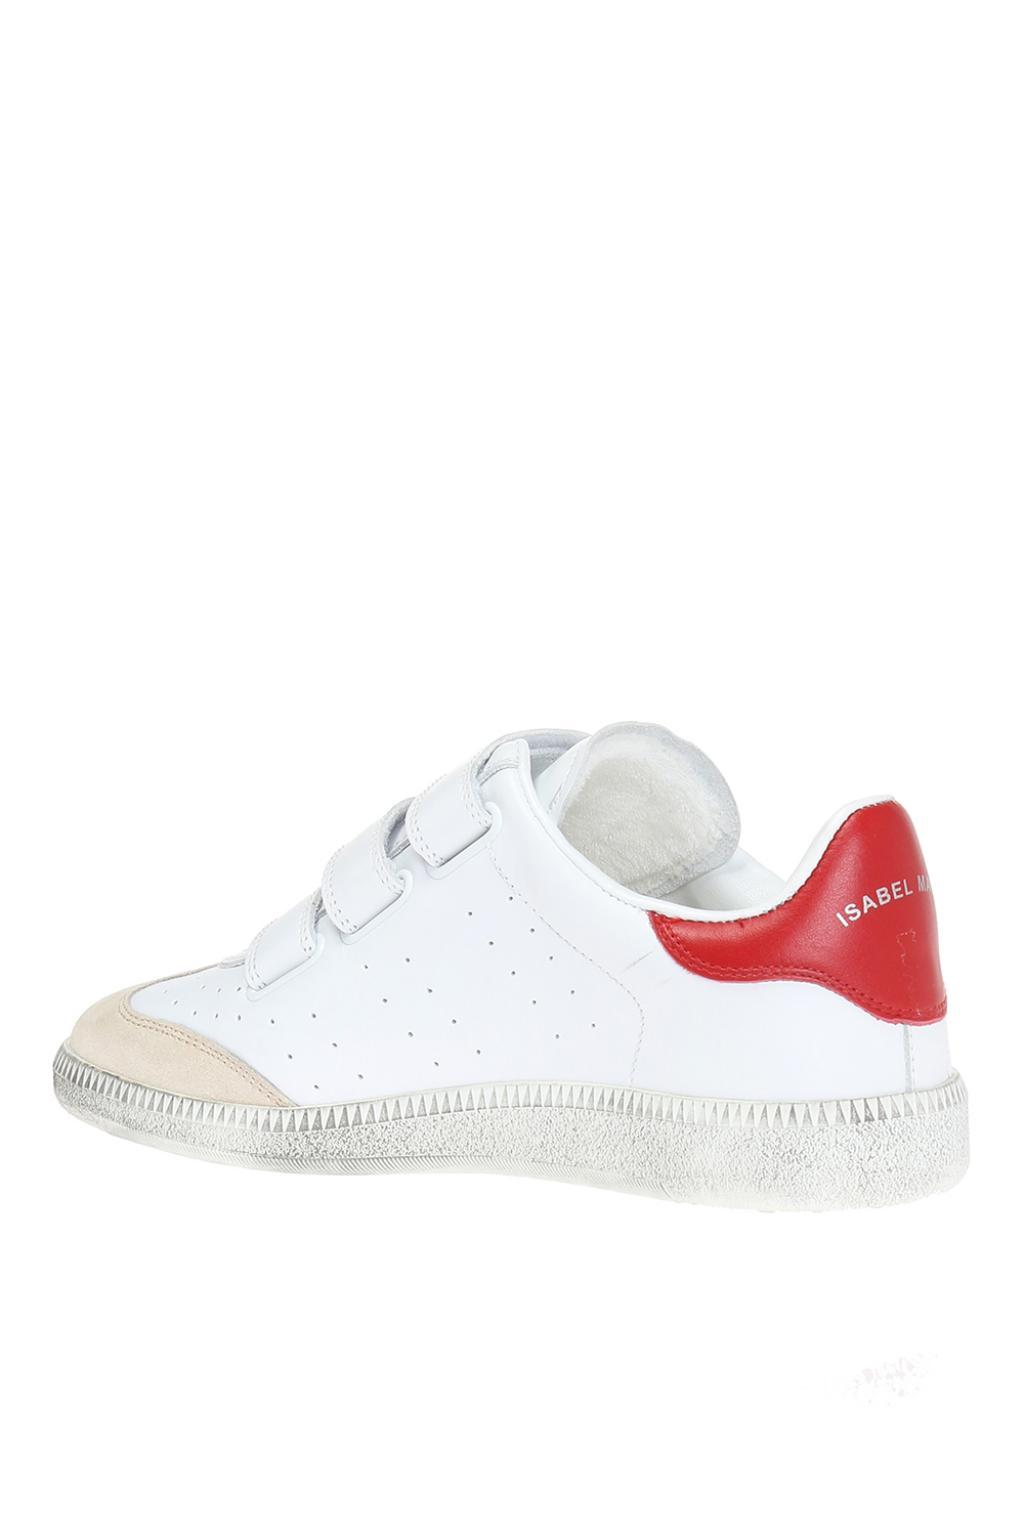 Isabel Marant Leather Beth Logo Grip-strap Sneakers in White